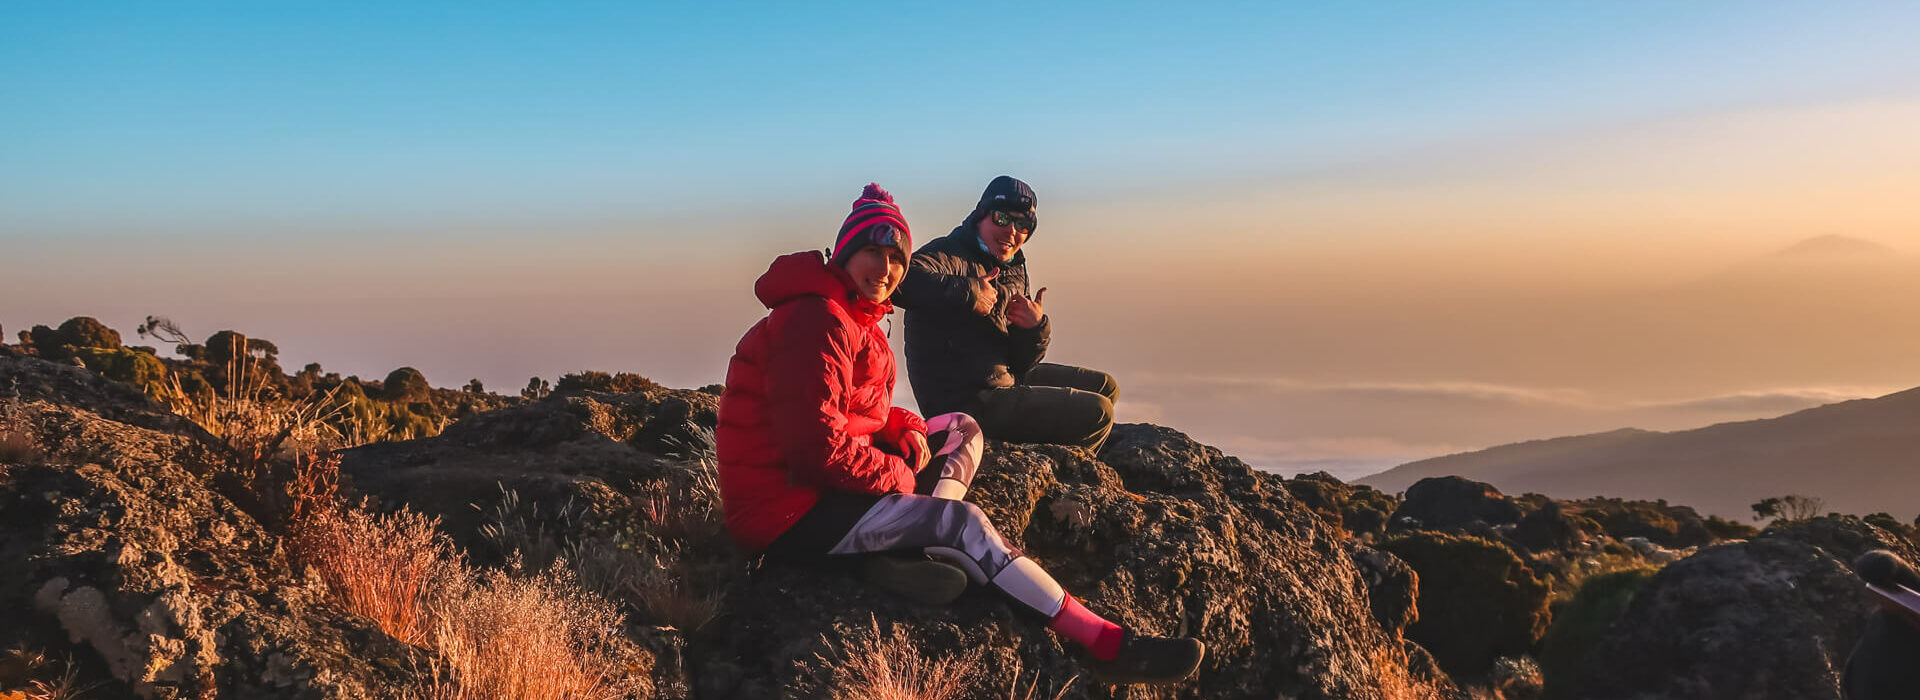 Kilimanjaro Expedition with Earth's Edge 1